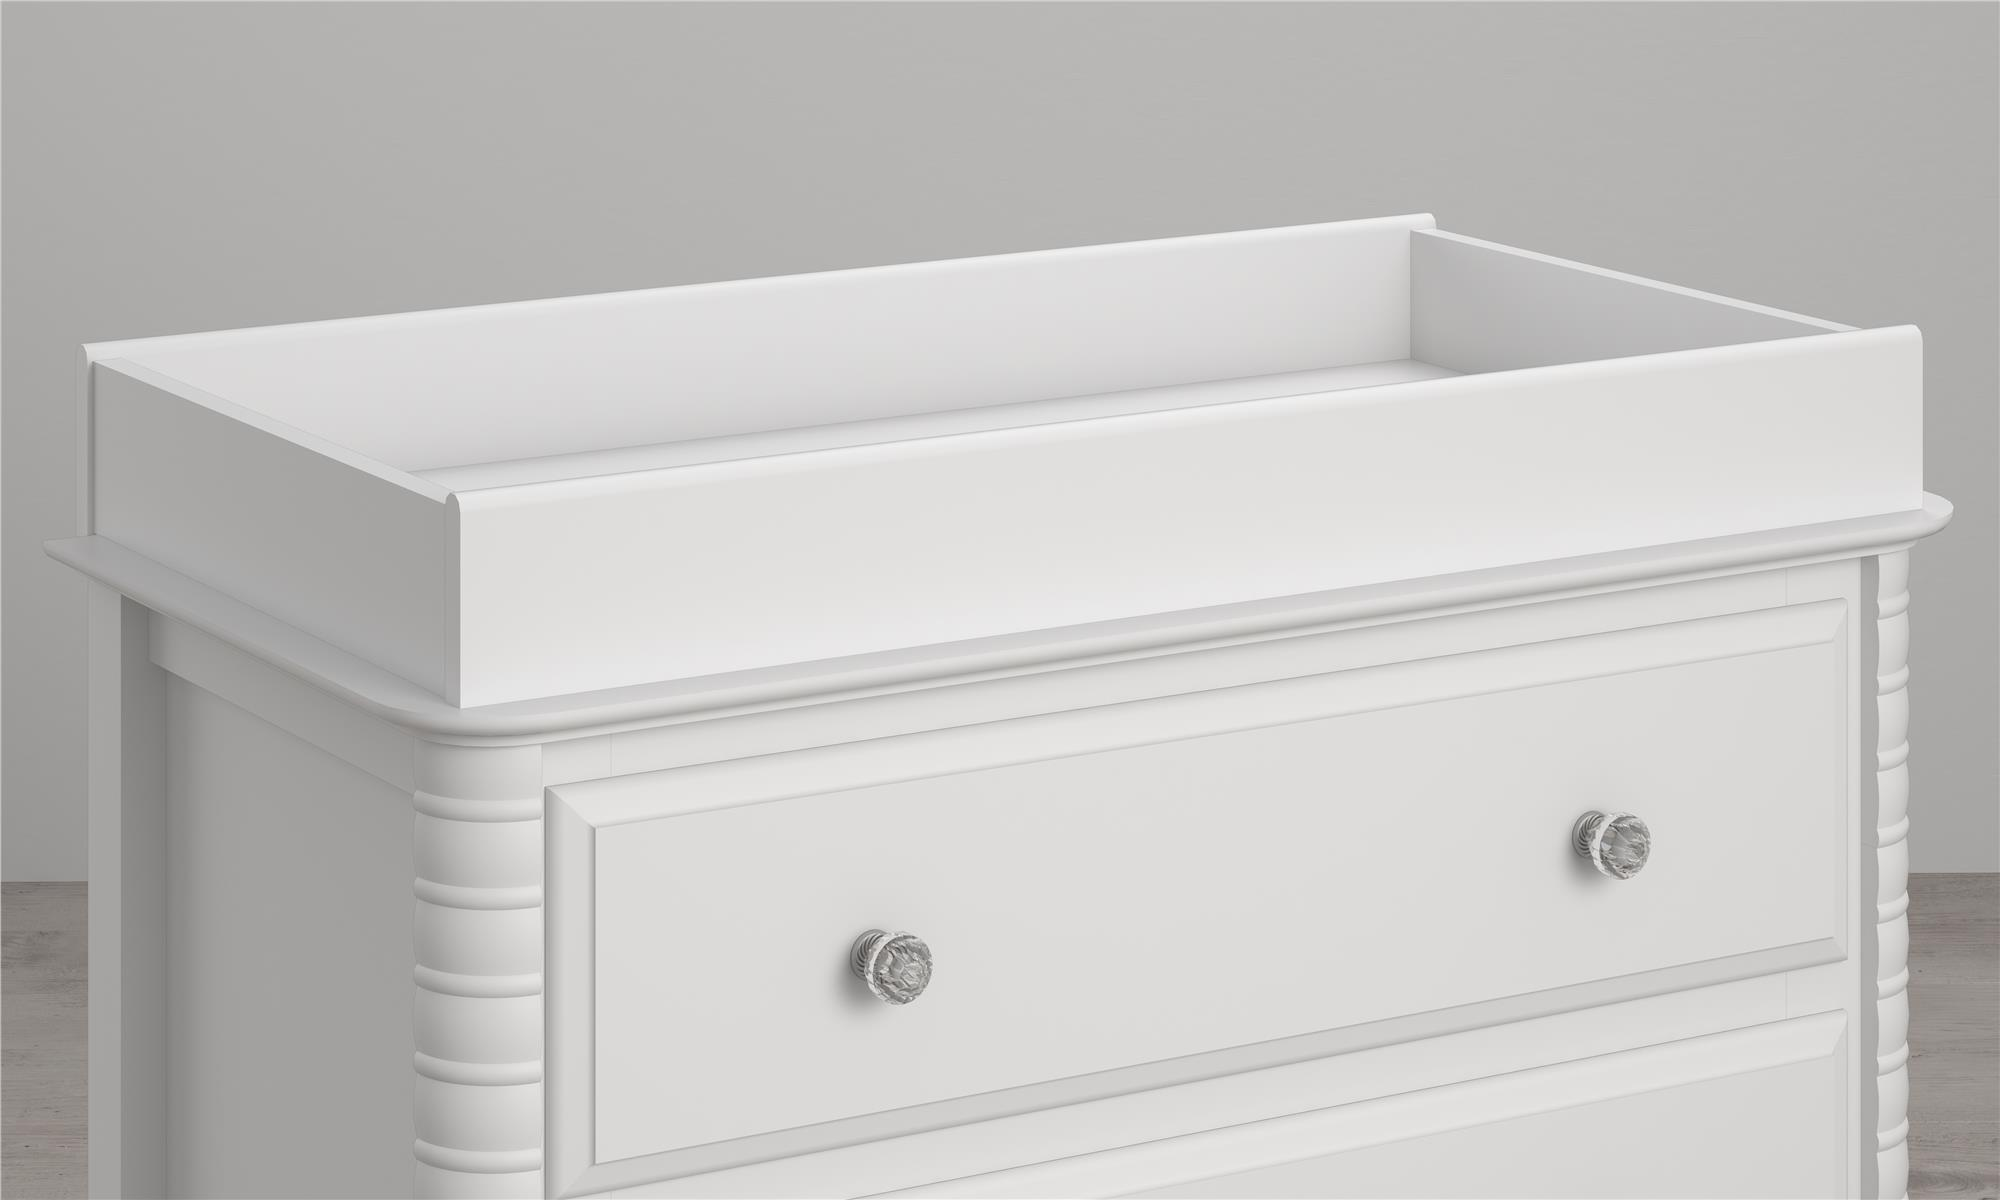 Little Seeds Rowan Valley Changing Table Topper, Painted White by Little Seeds